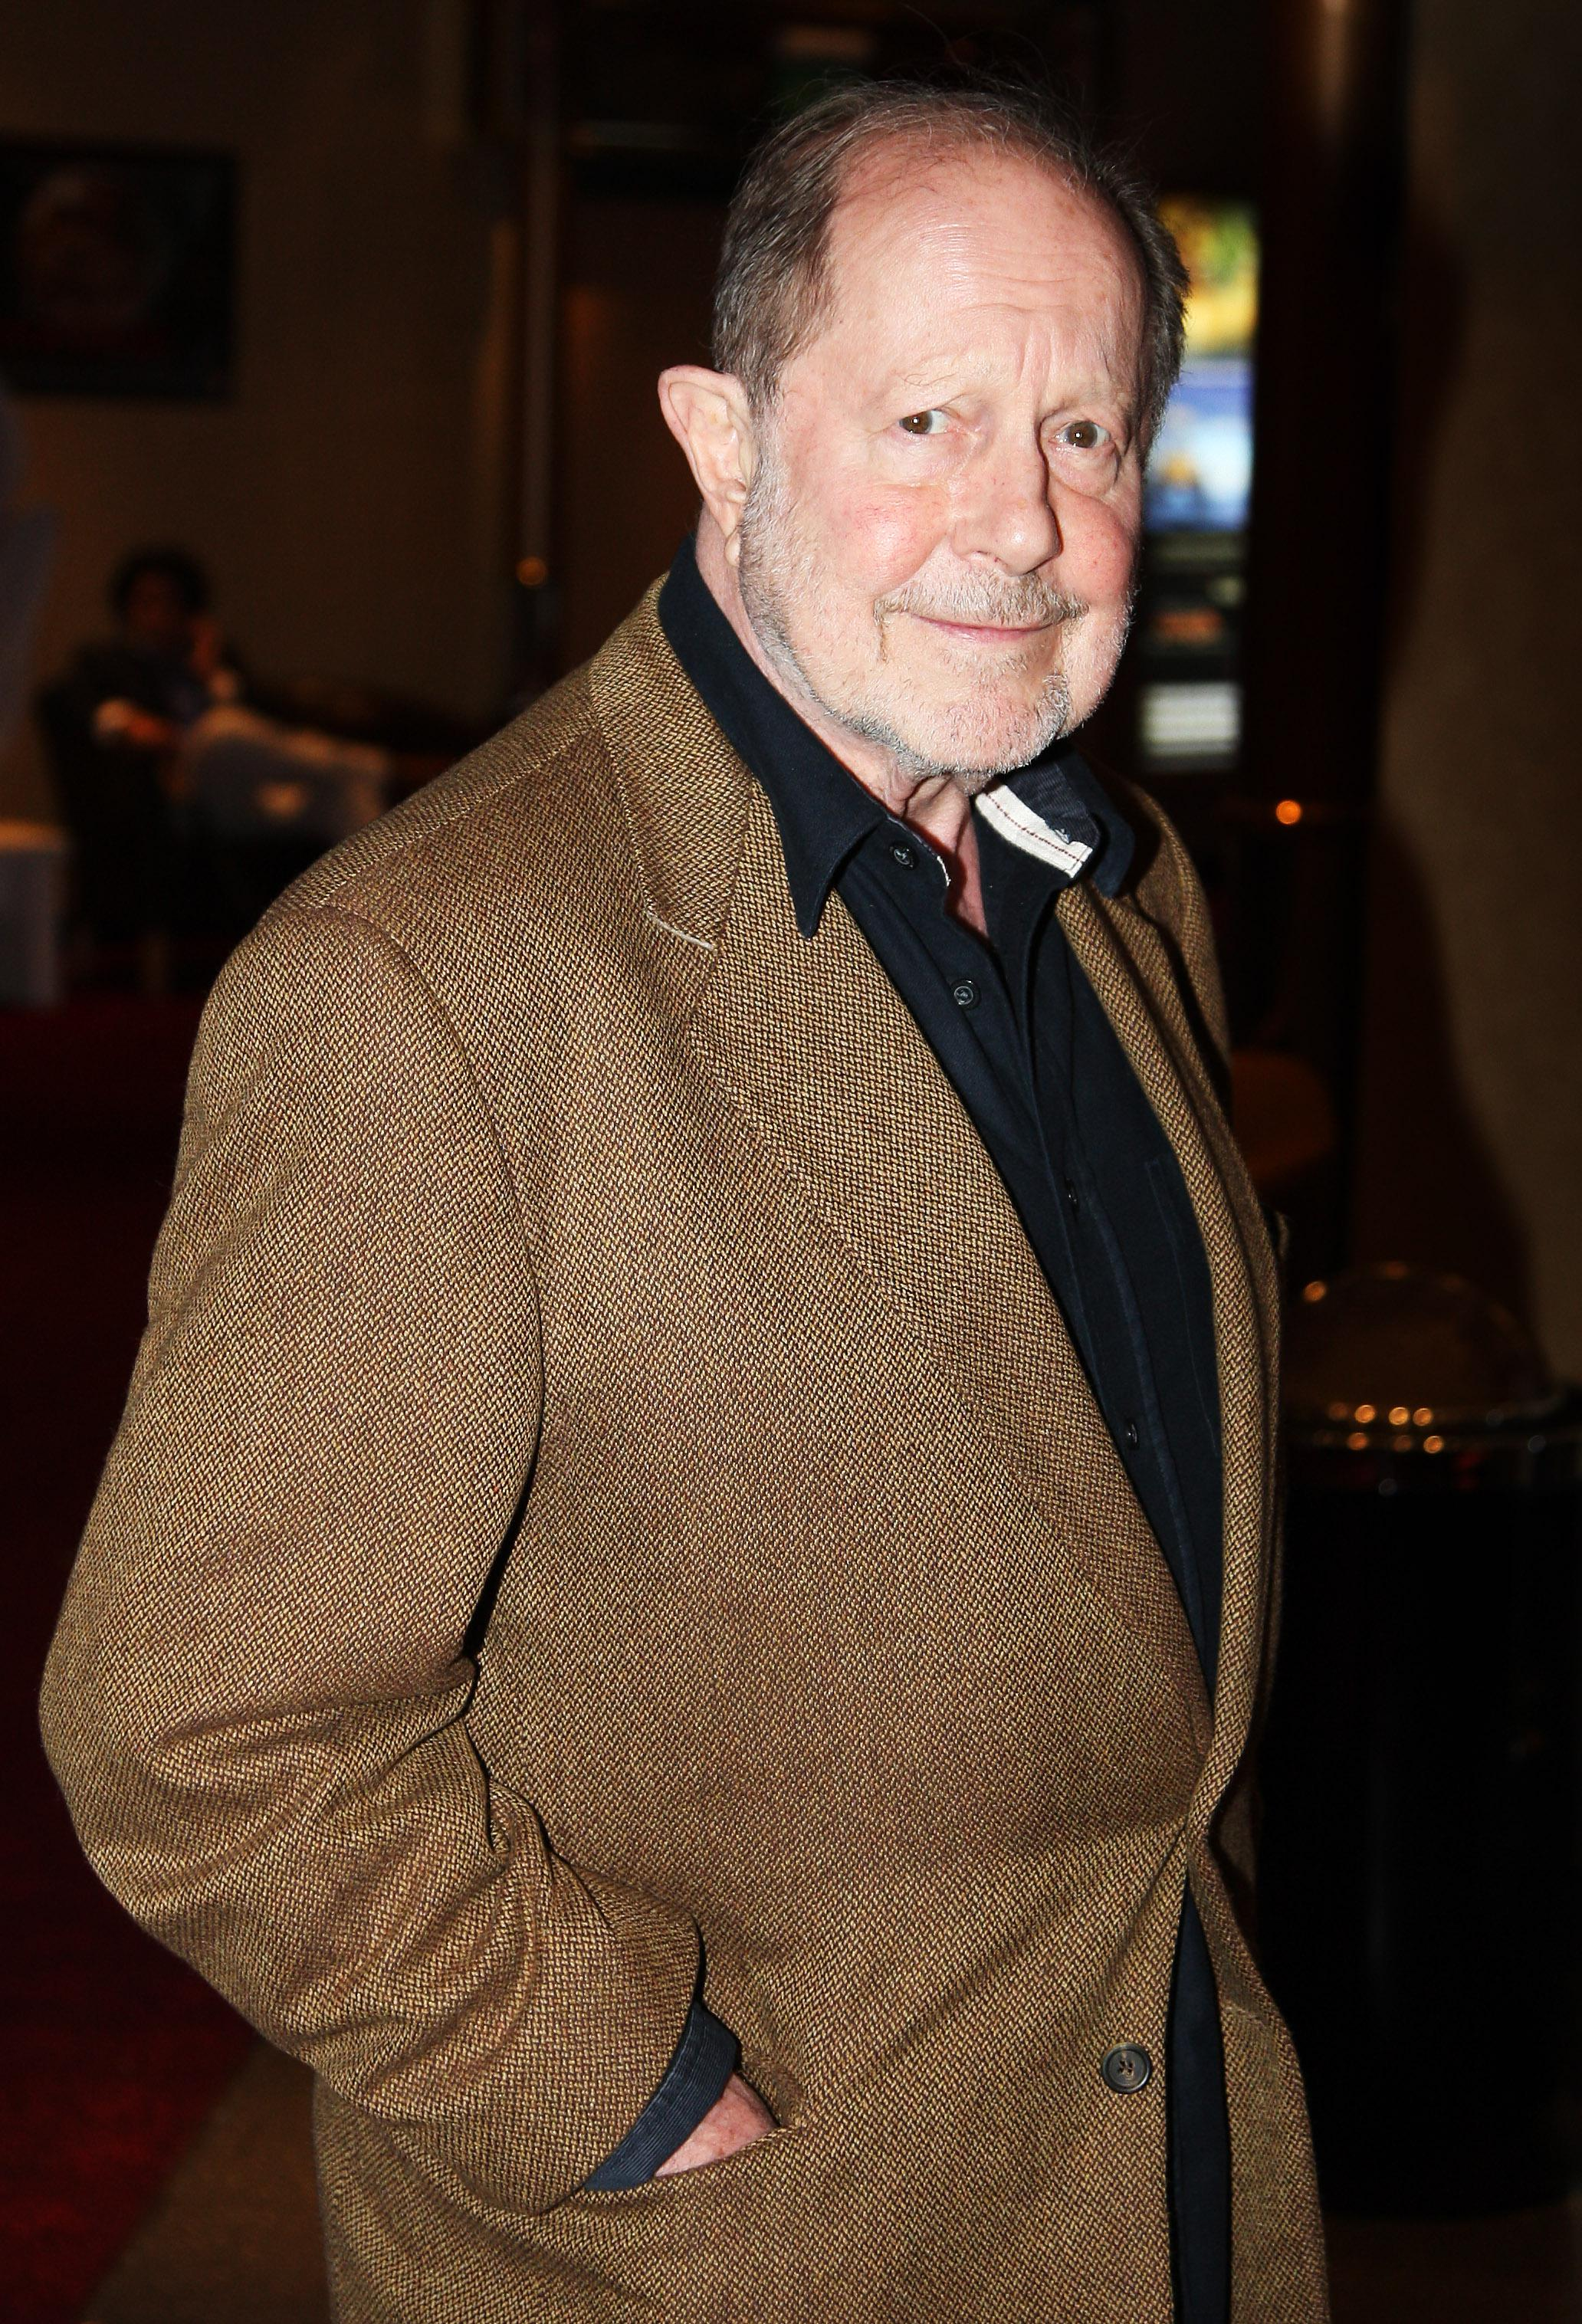 Nicholas Roeg, in a brown jacket and black shirt.